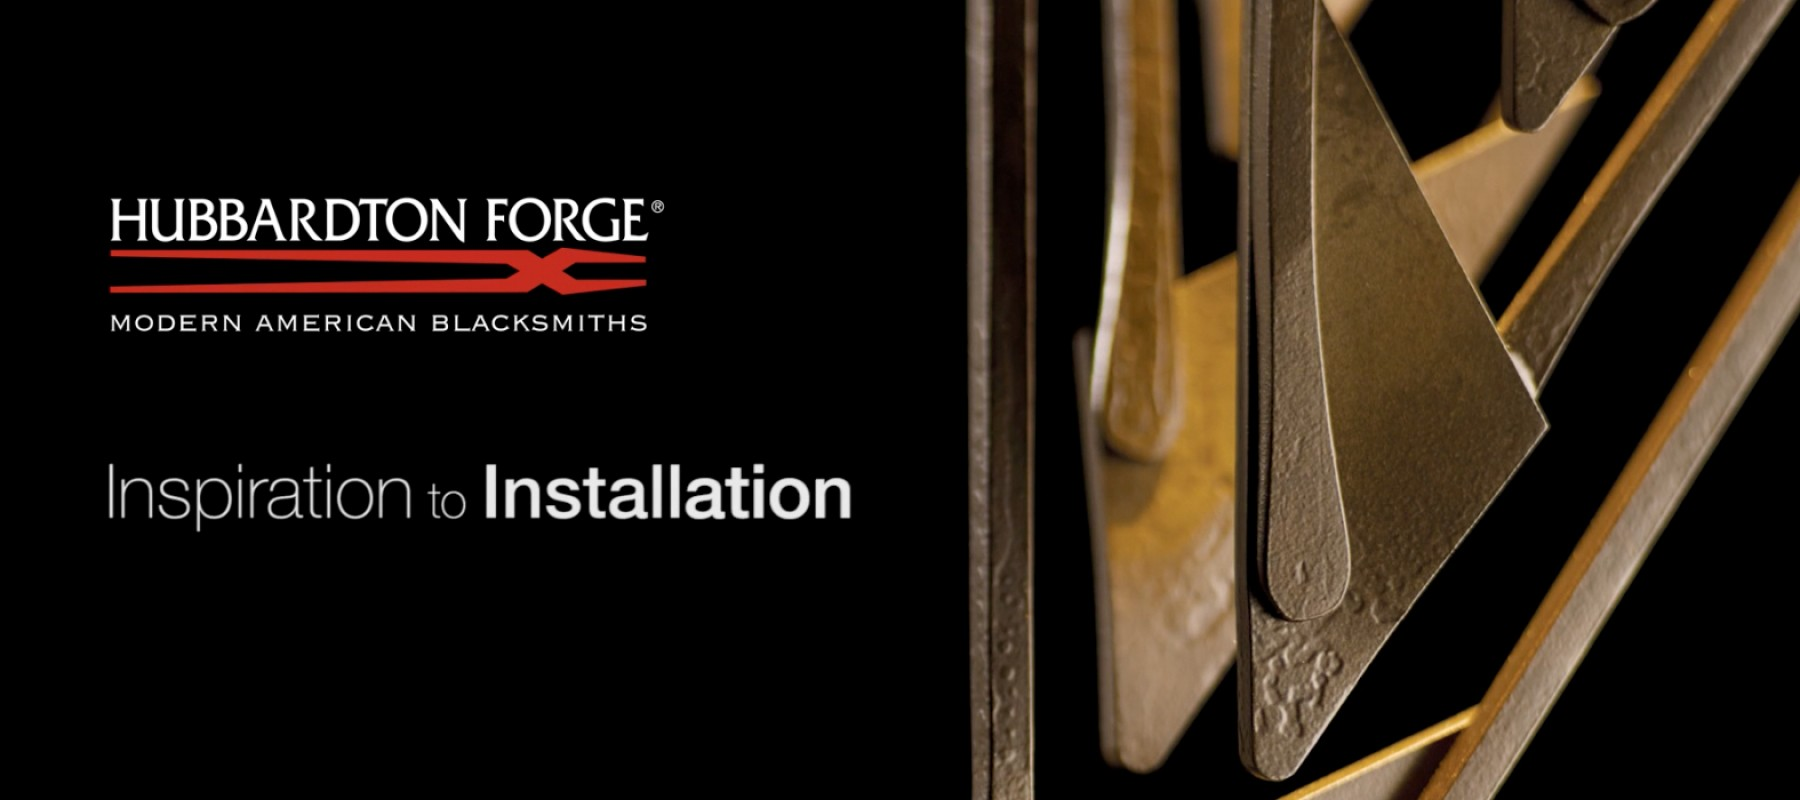 check out our latest video inspiration to installation